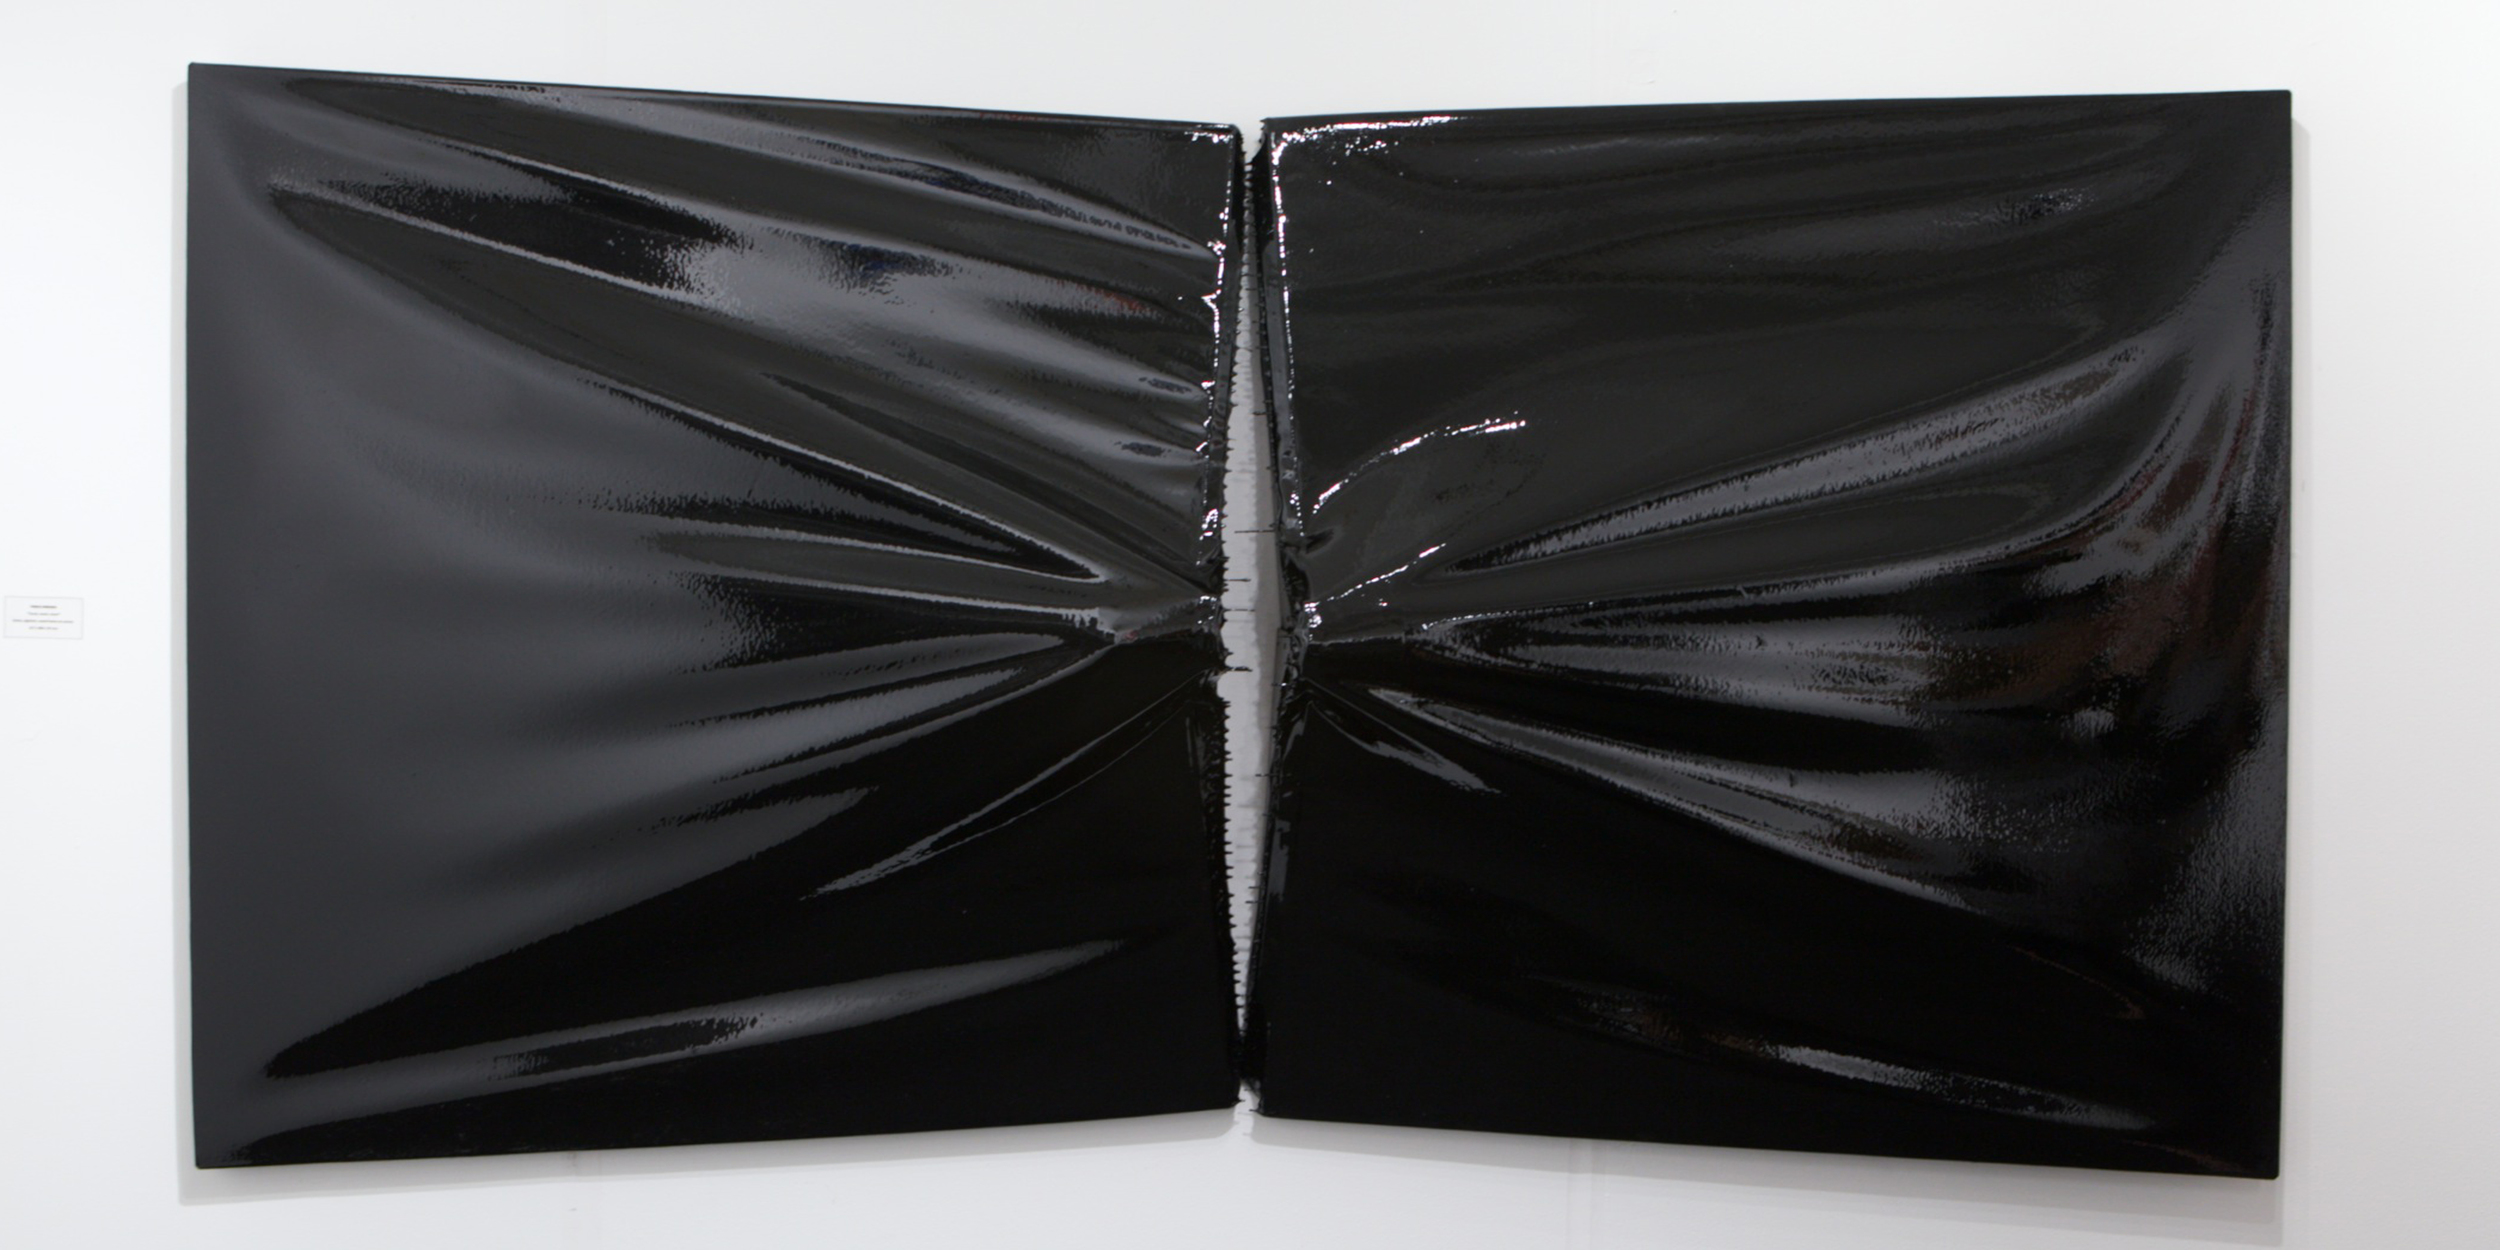 Pablo Jansana © 2014 ,  B1 & B2 . Installation view at Eleven Rivington, New York. Epoxy and pigment on canvas. 127 x 306 x 35 cm. Courtesy of the artist and Eleven Rivington.